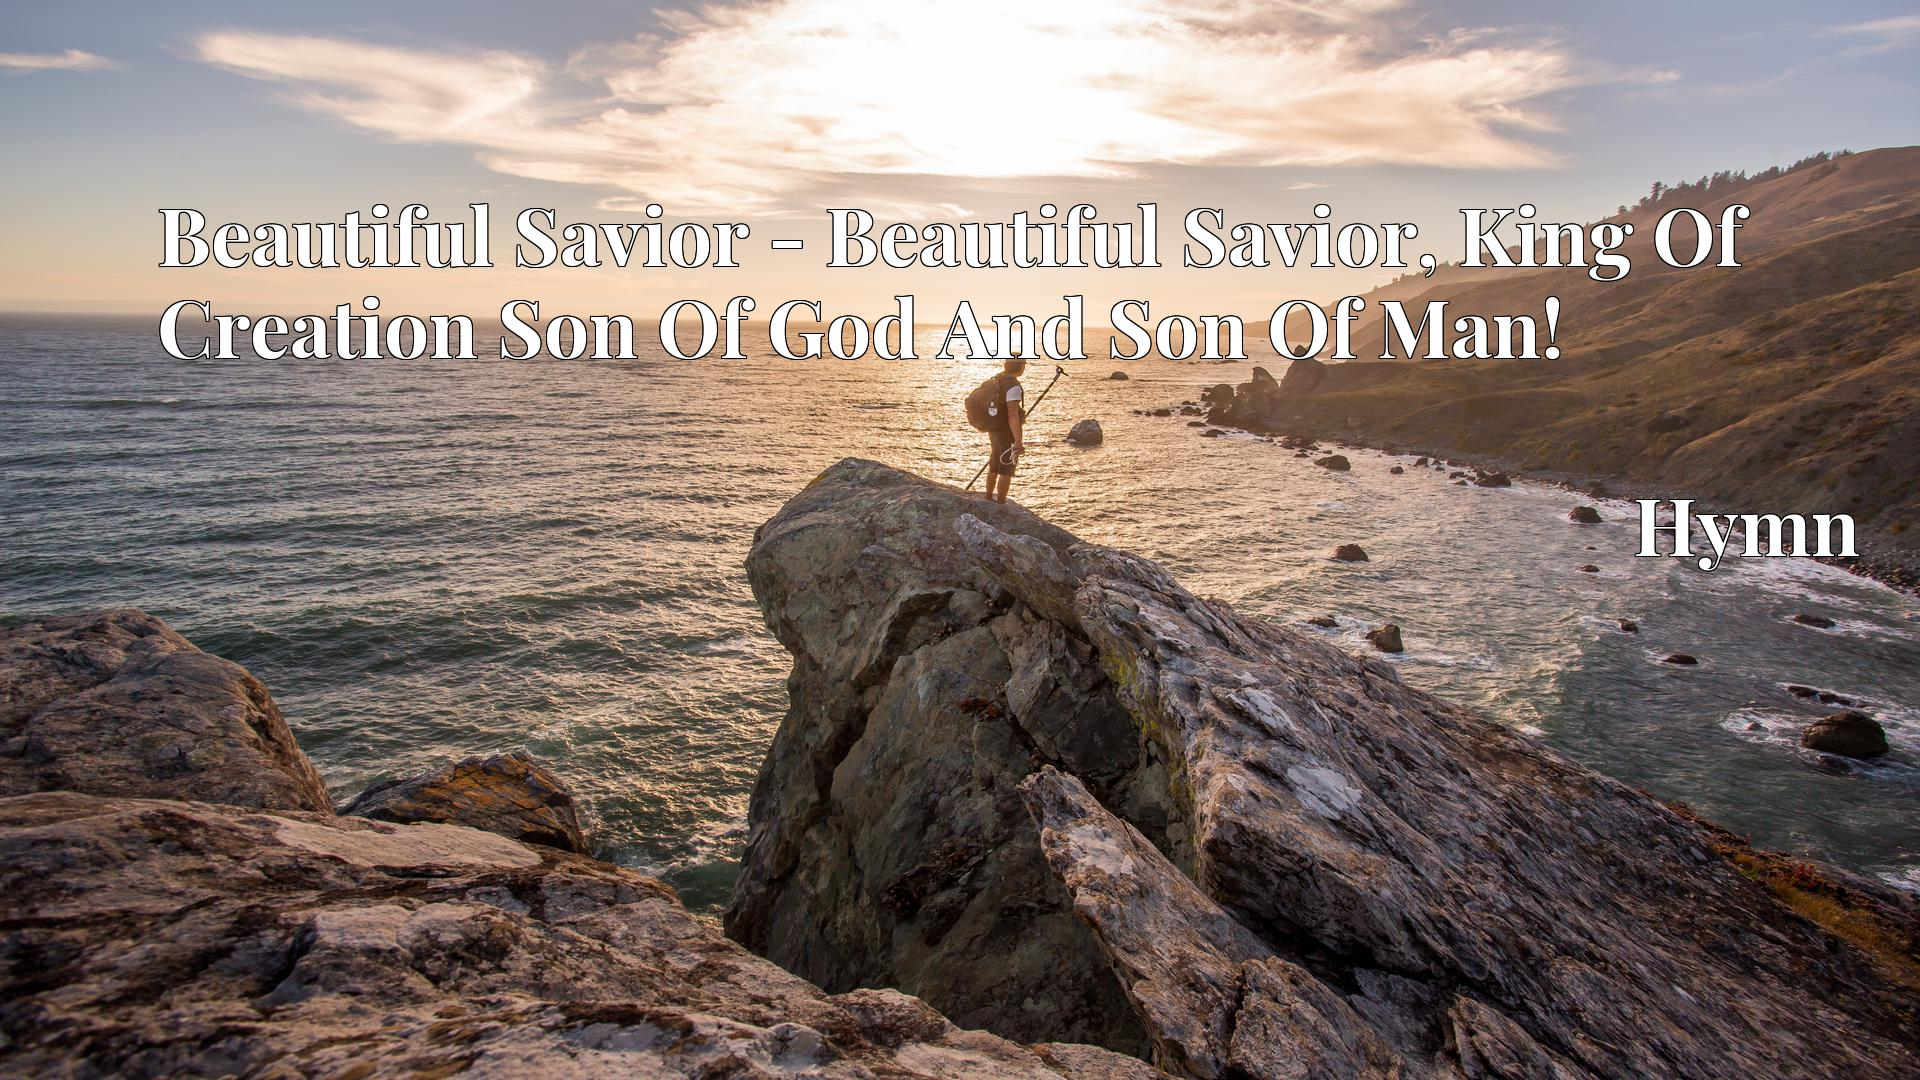 Beautiful Savior - Beautiful Savior, King Of Creation Son Of God And Son Of Man! - Hymn